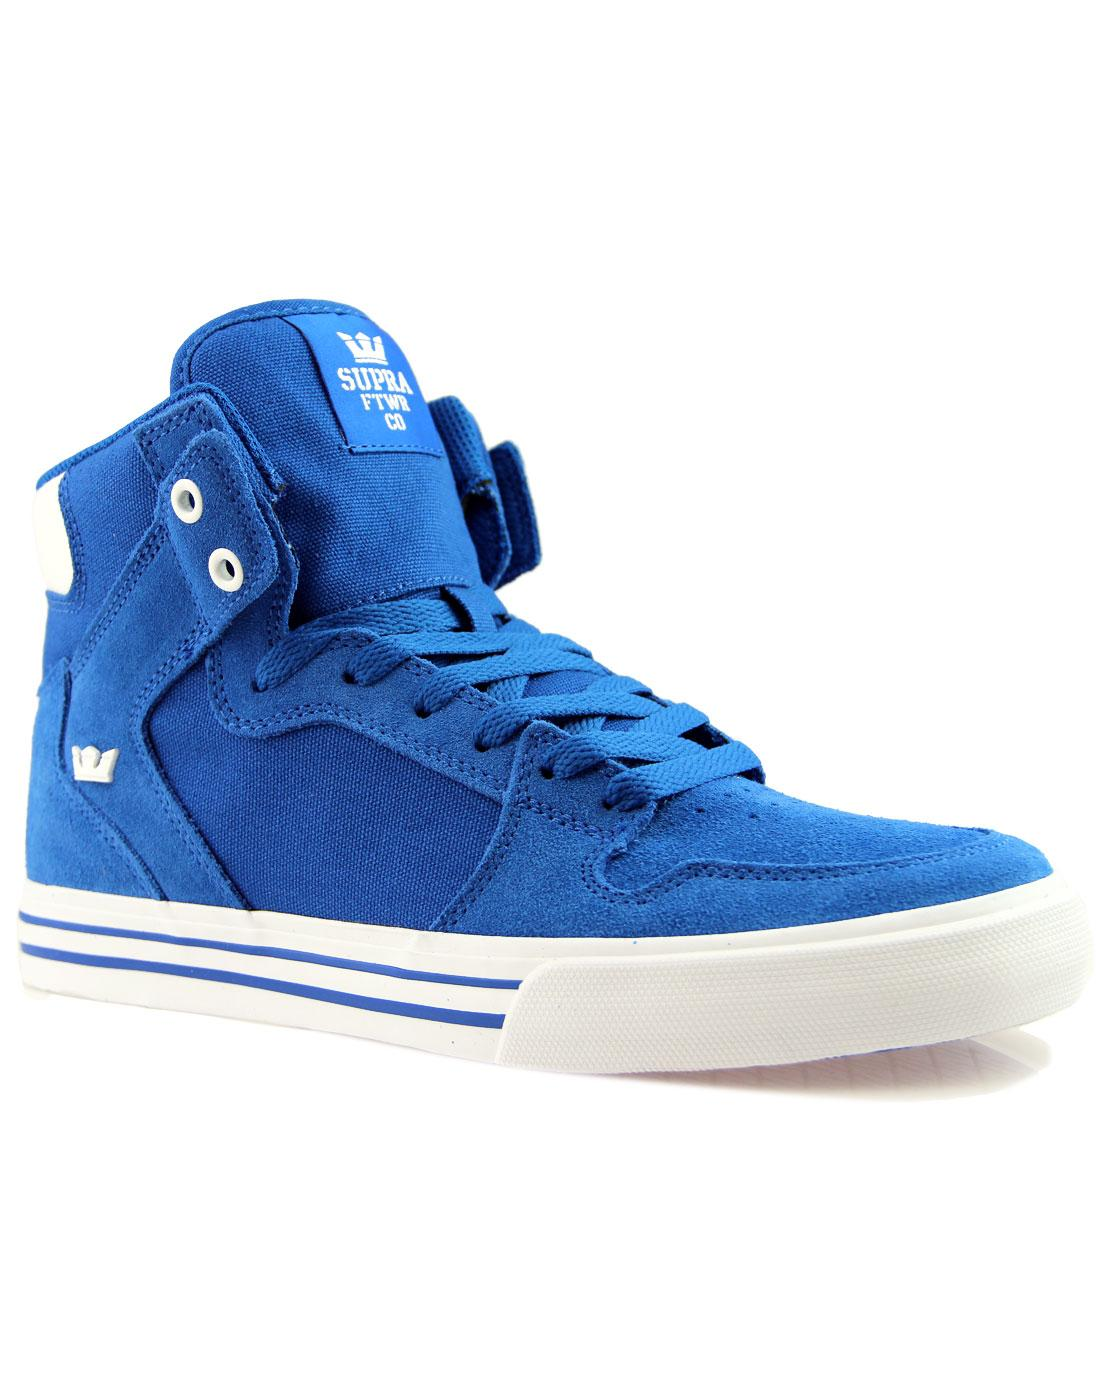 Vaider SUPRA Retro 90s Hi Top Board Trainers OCEAN